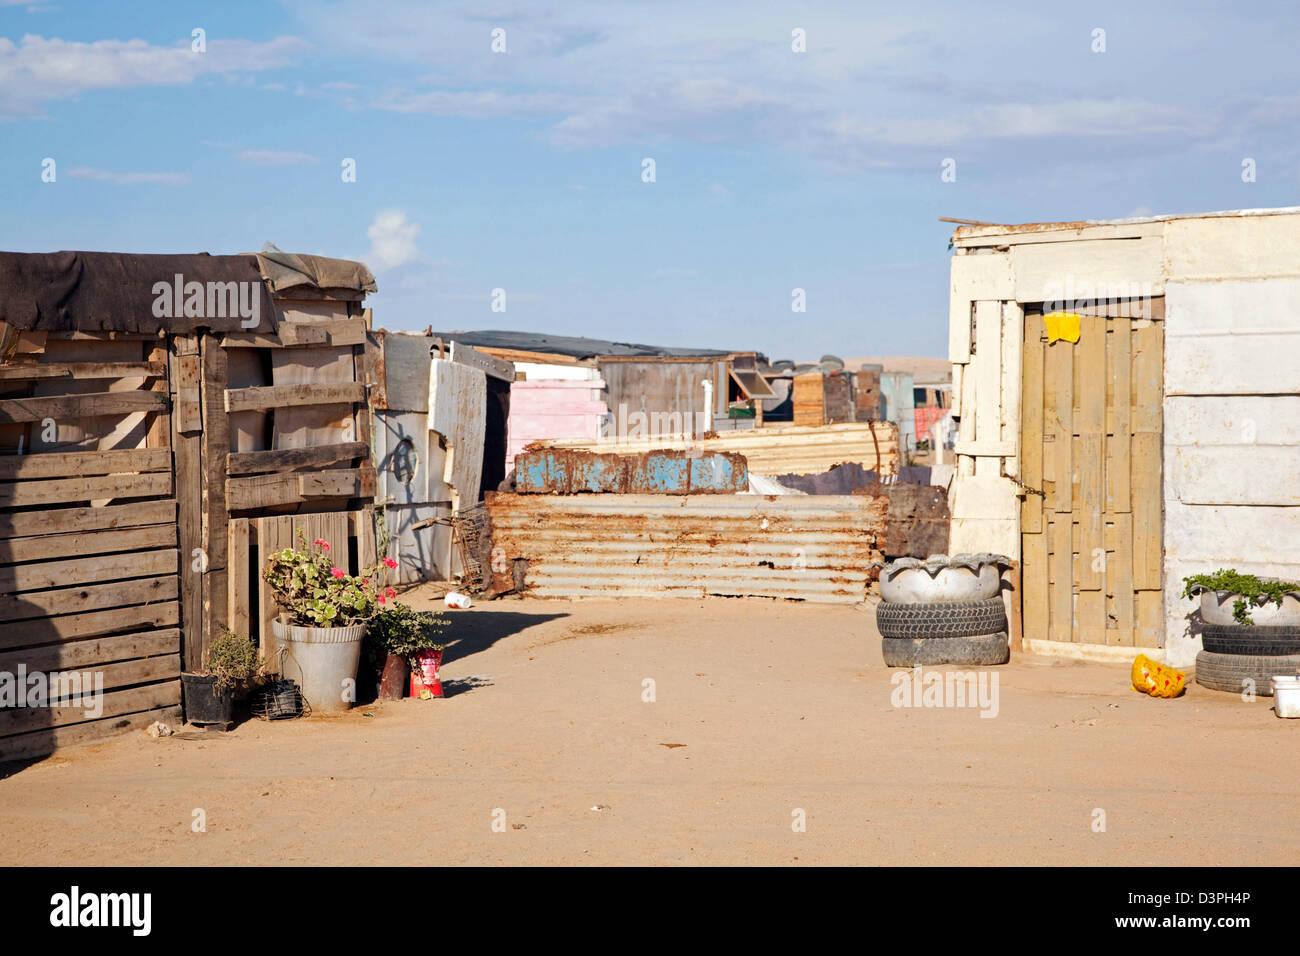 Improvised shacks, made from scrap materials at slum near Swakopmund, Namibia, South Africa - Stock Image